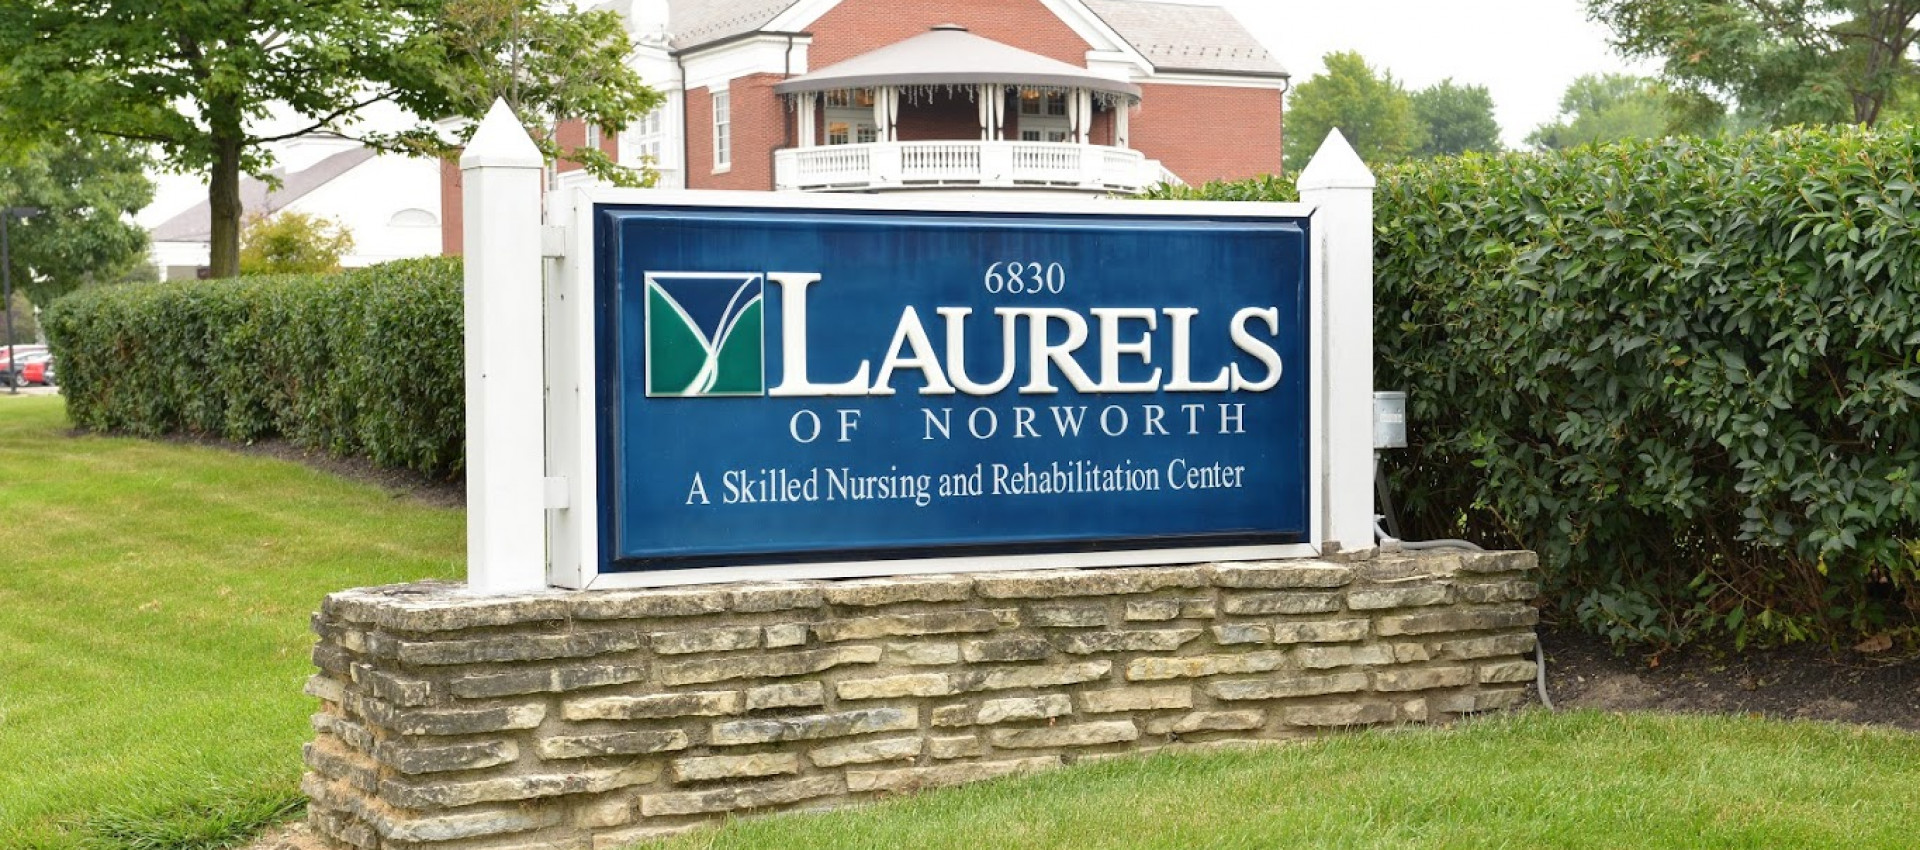 The Laurels of Norworth